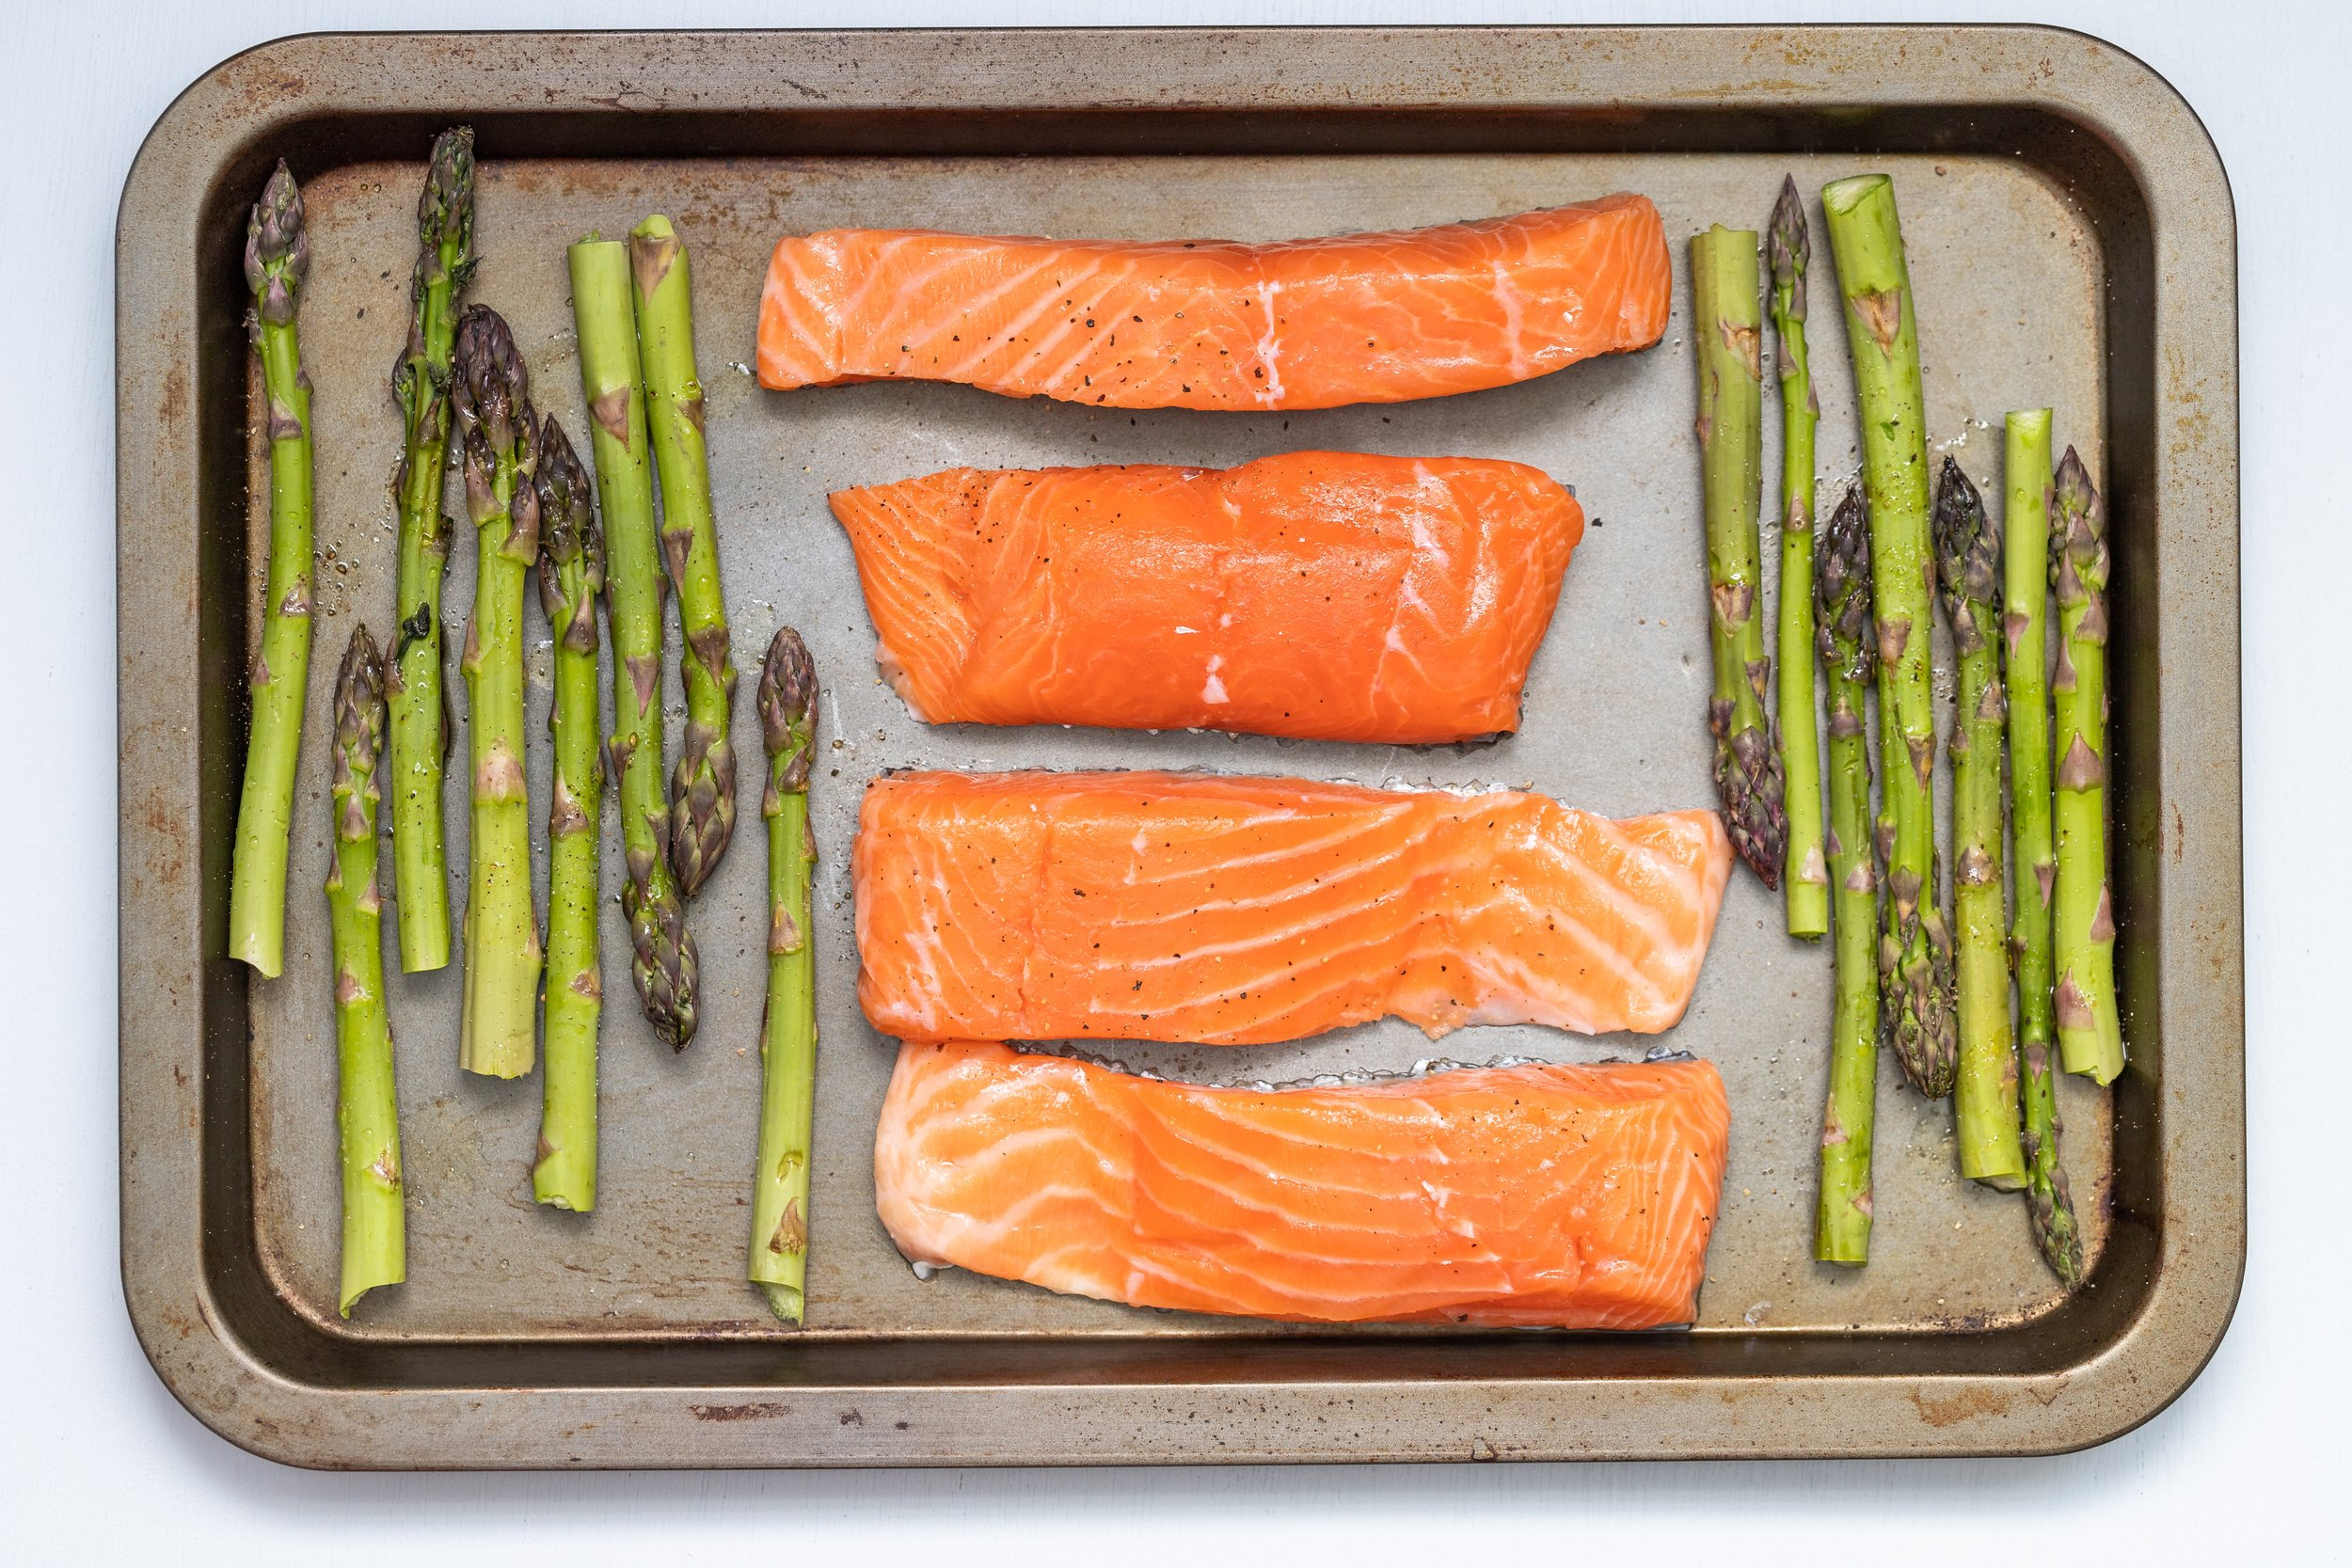 Wild salmon contains omega 3's which reduce inflammation and are good for the nervous system. Make sure it's wild and not farmed salmon.